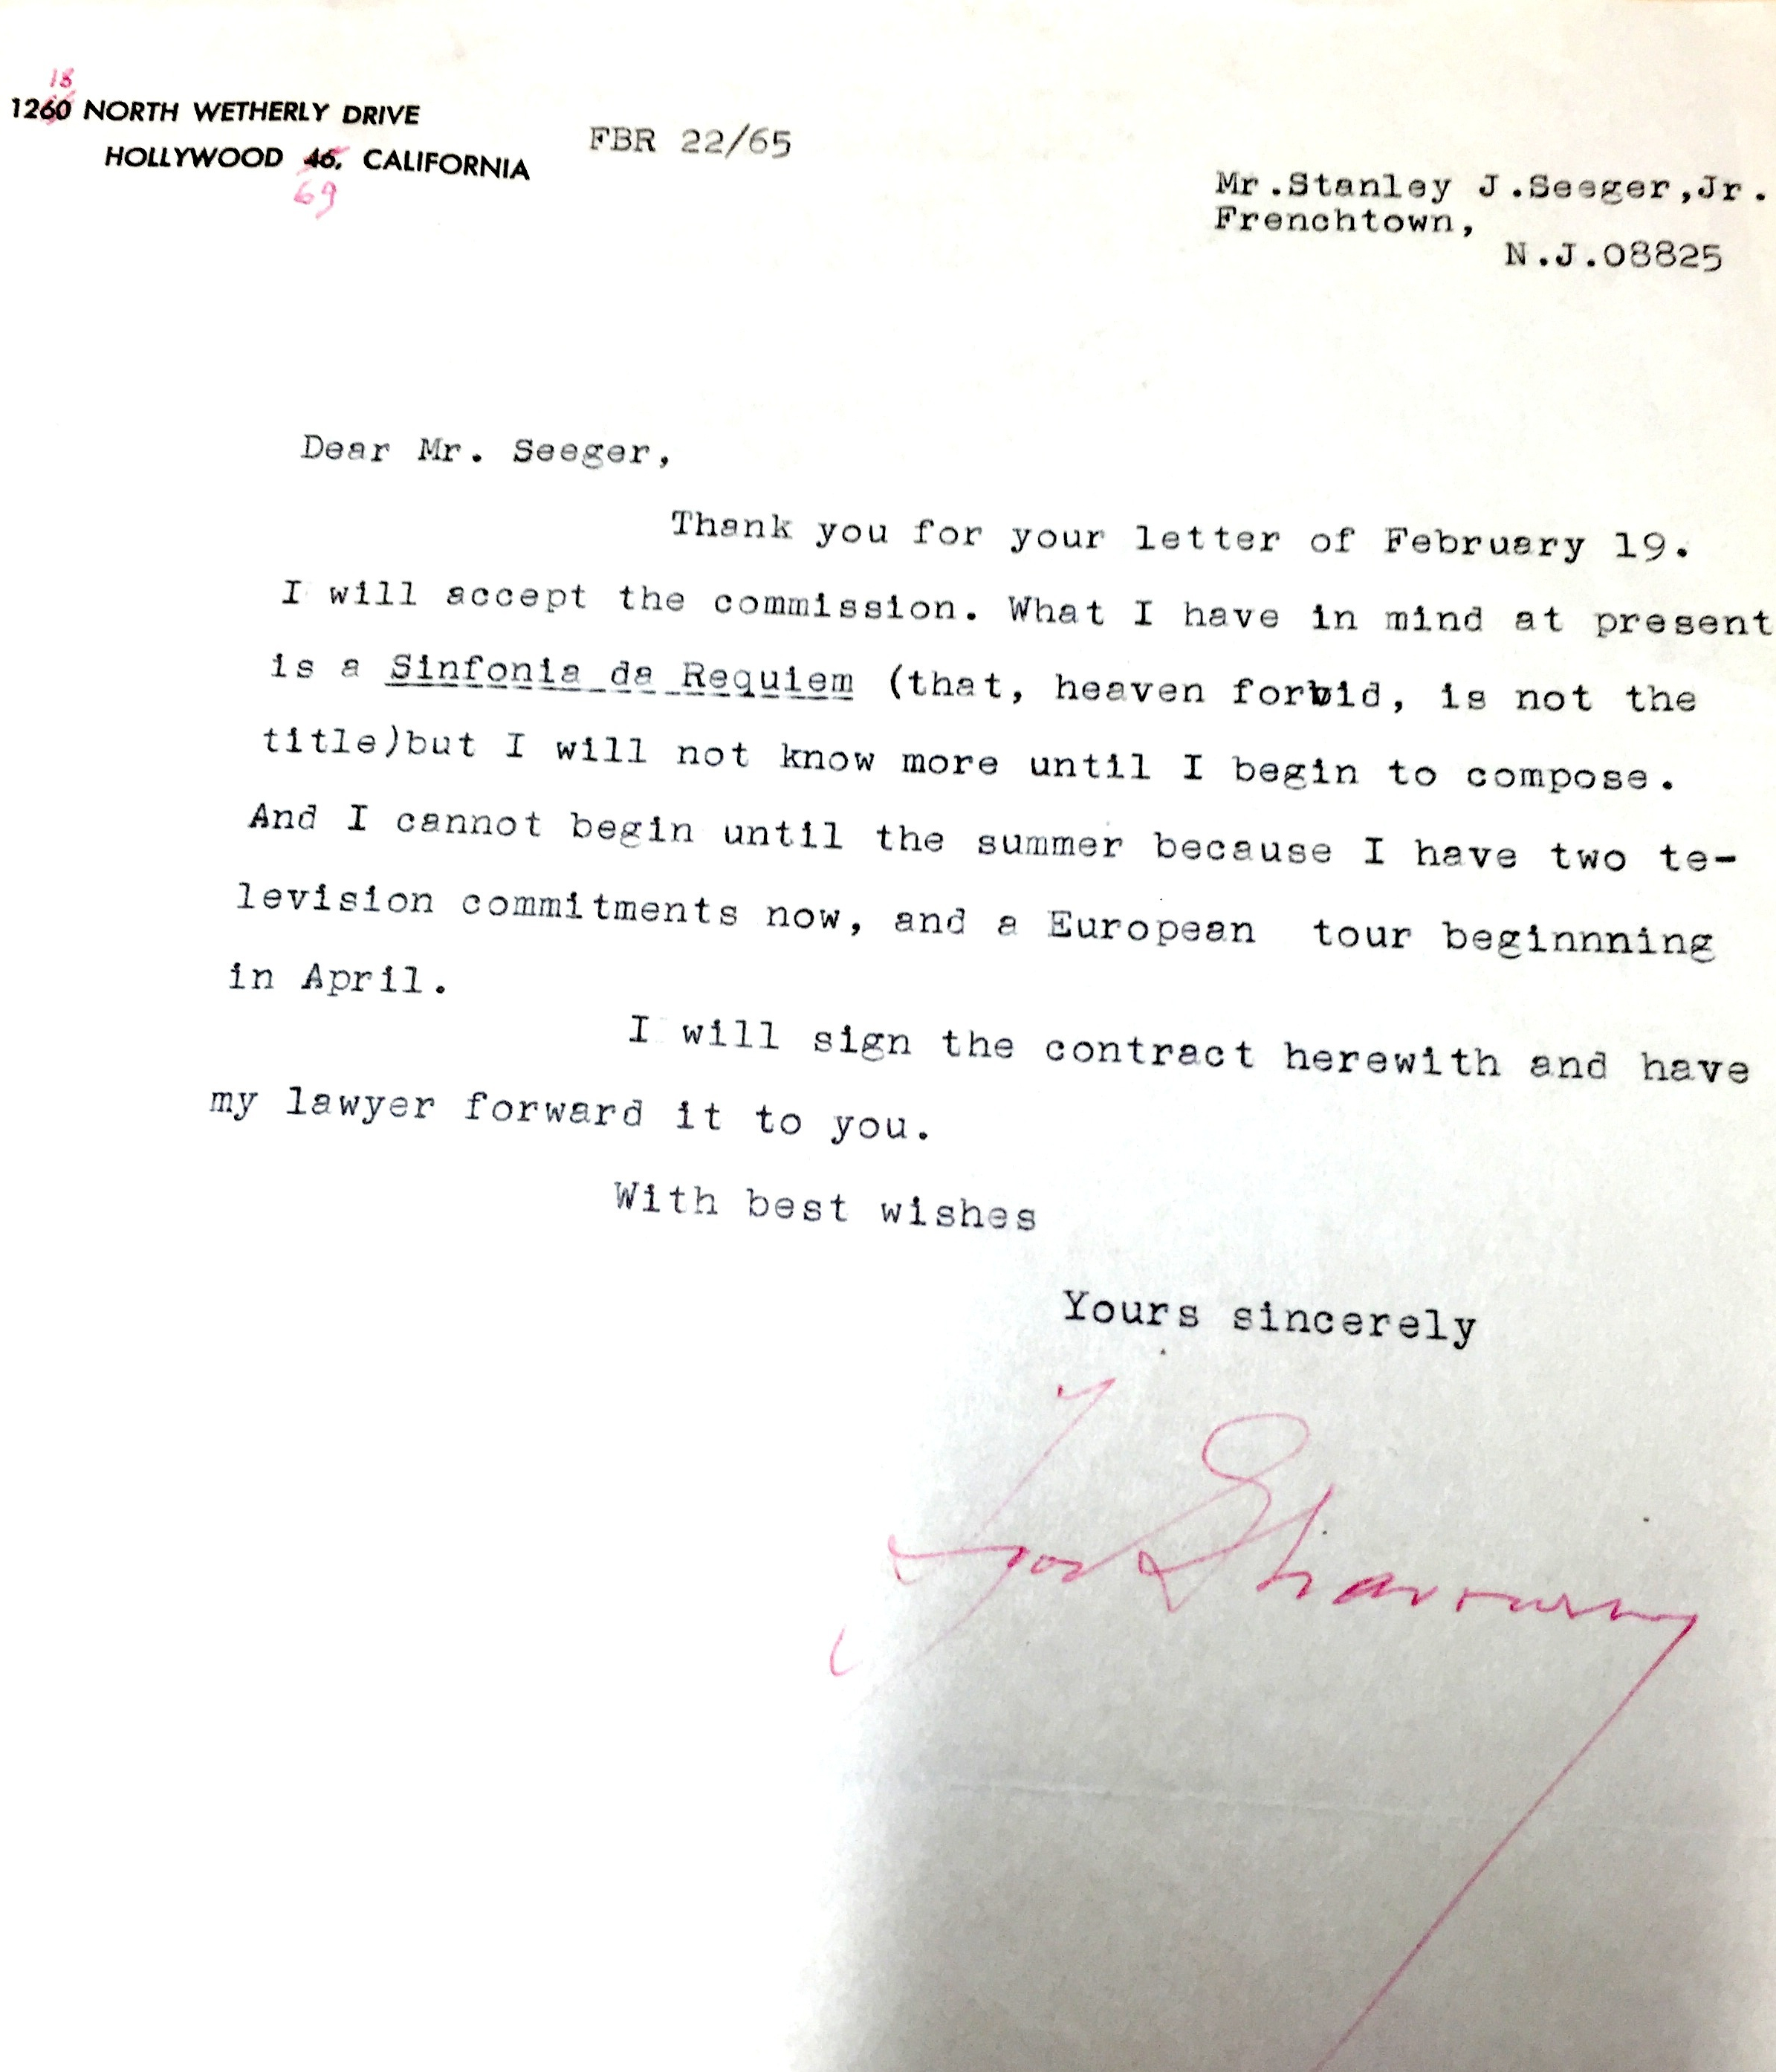 The letter sent on February 22, 1965 is a positive commitment to the project of composing a Requiem.